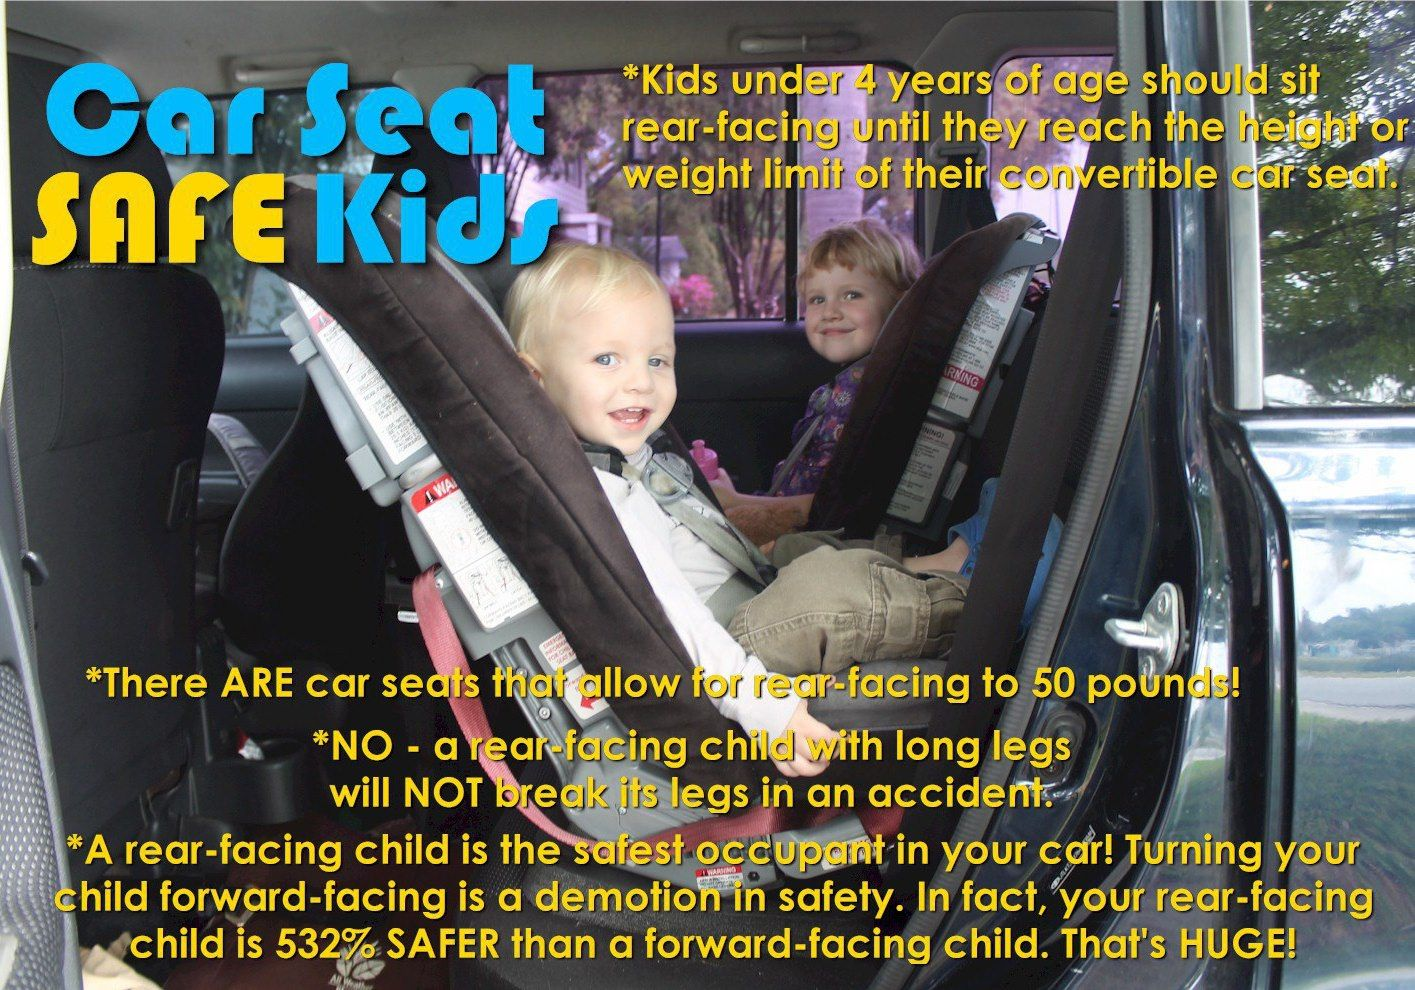 Kids under 4 years of age should sit rear facing until they max out ...